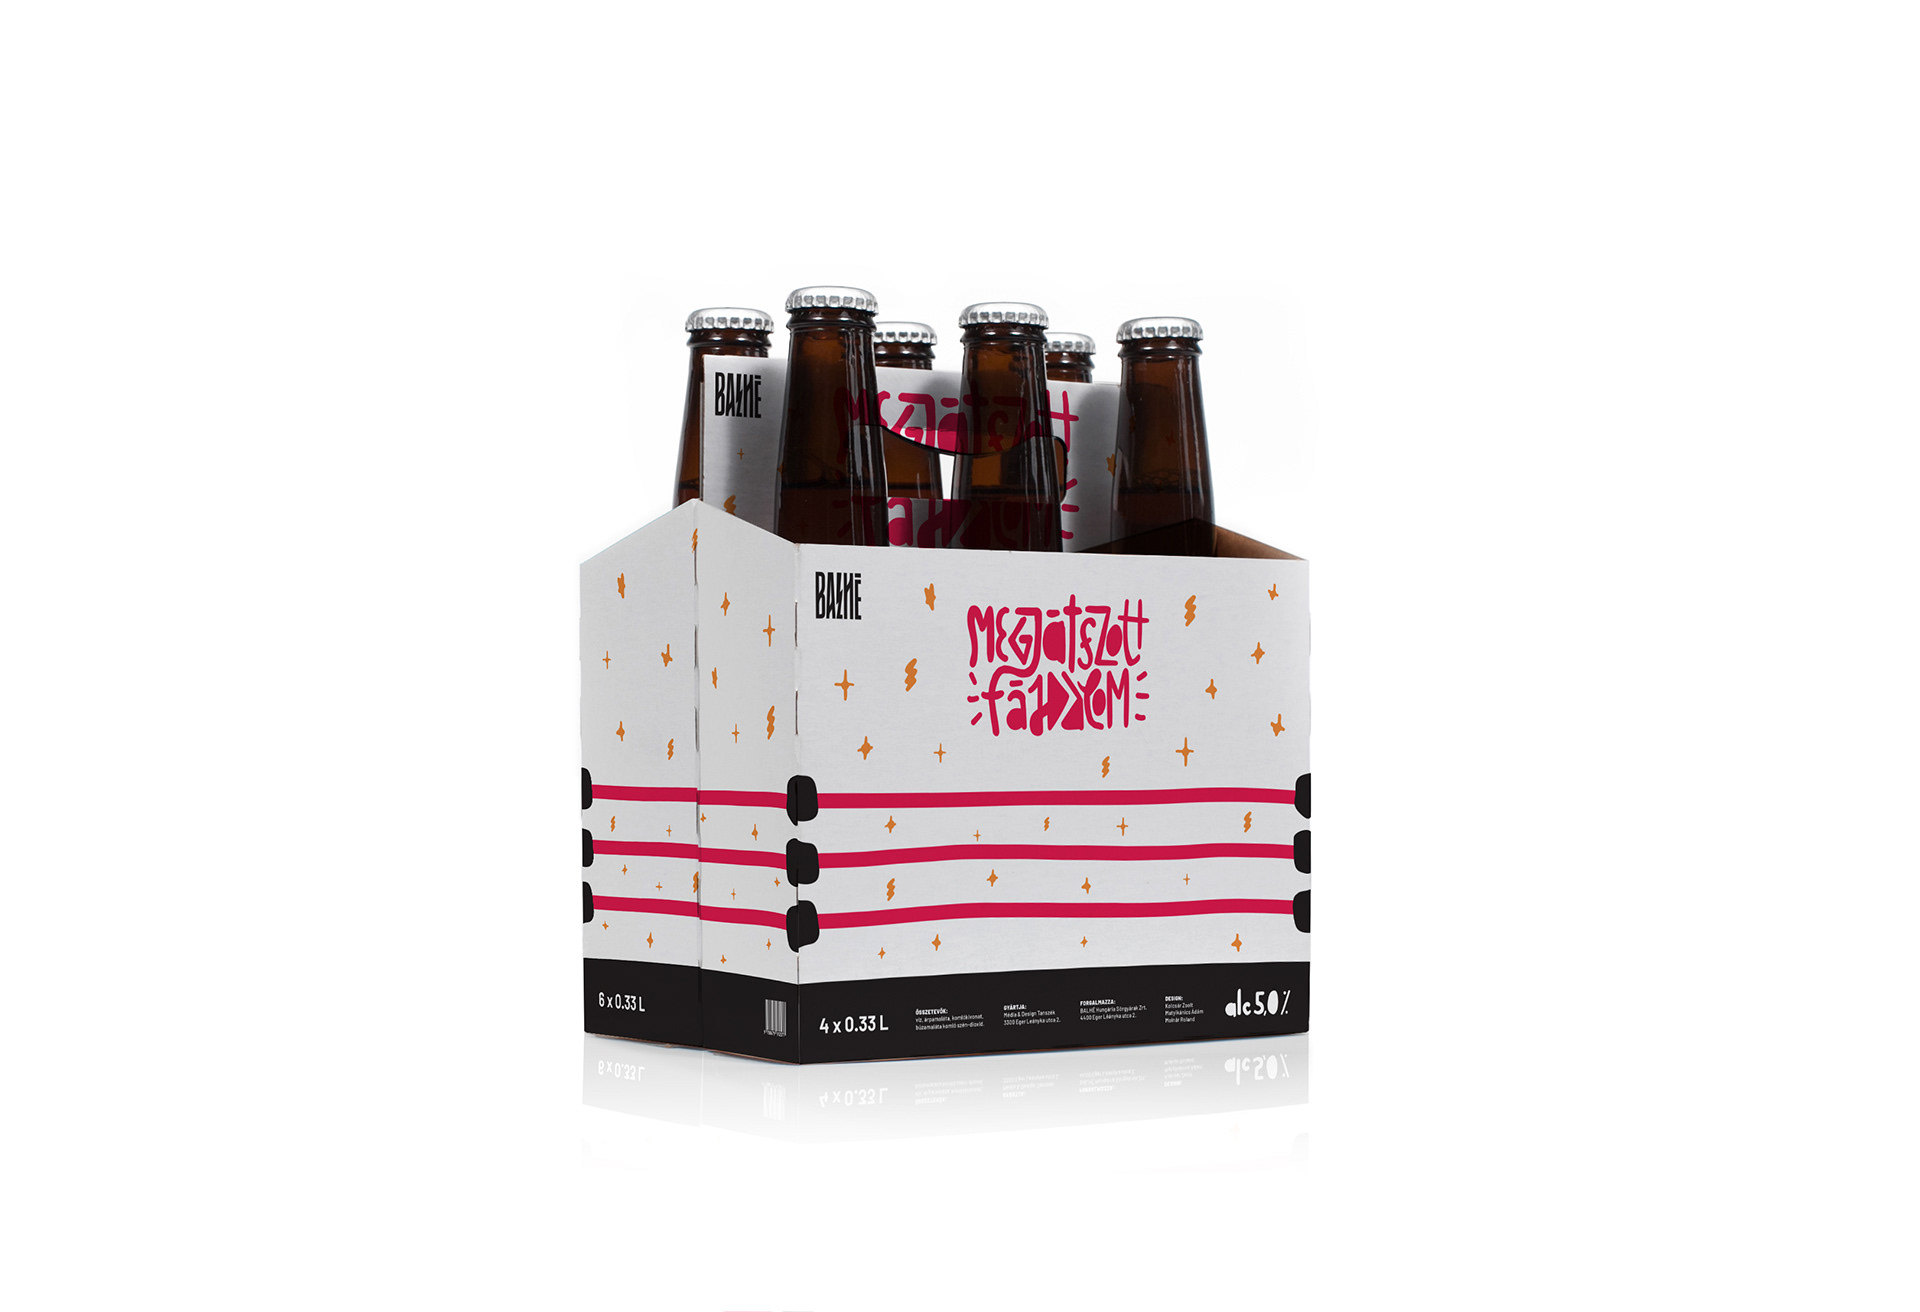 BALHÉ Craft Beer Packaging Design Student Project / World Brand & Packaging Design Society